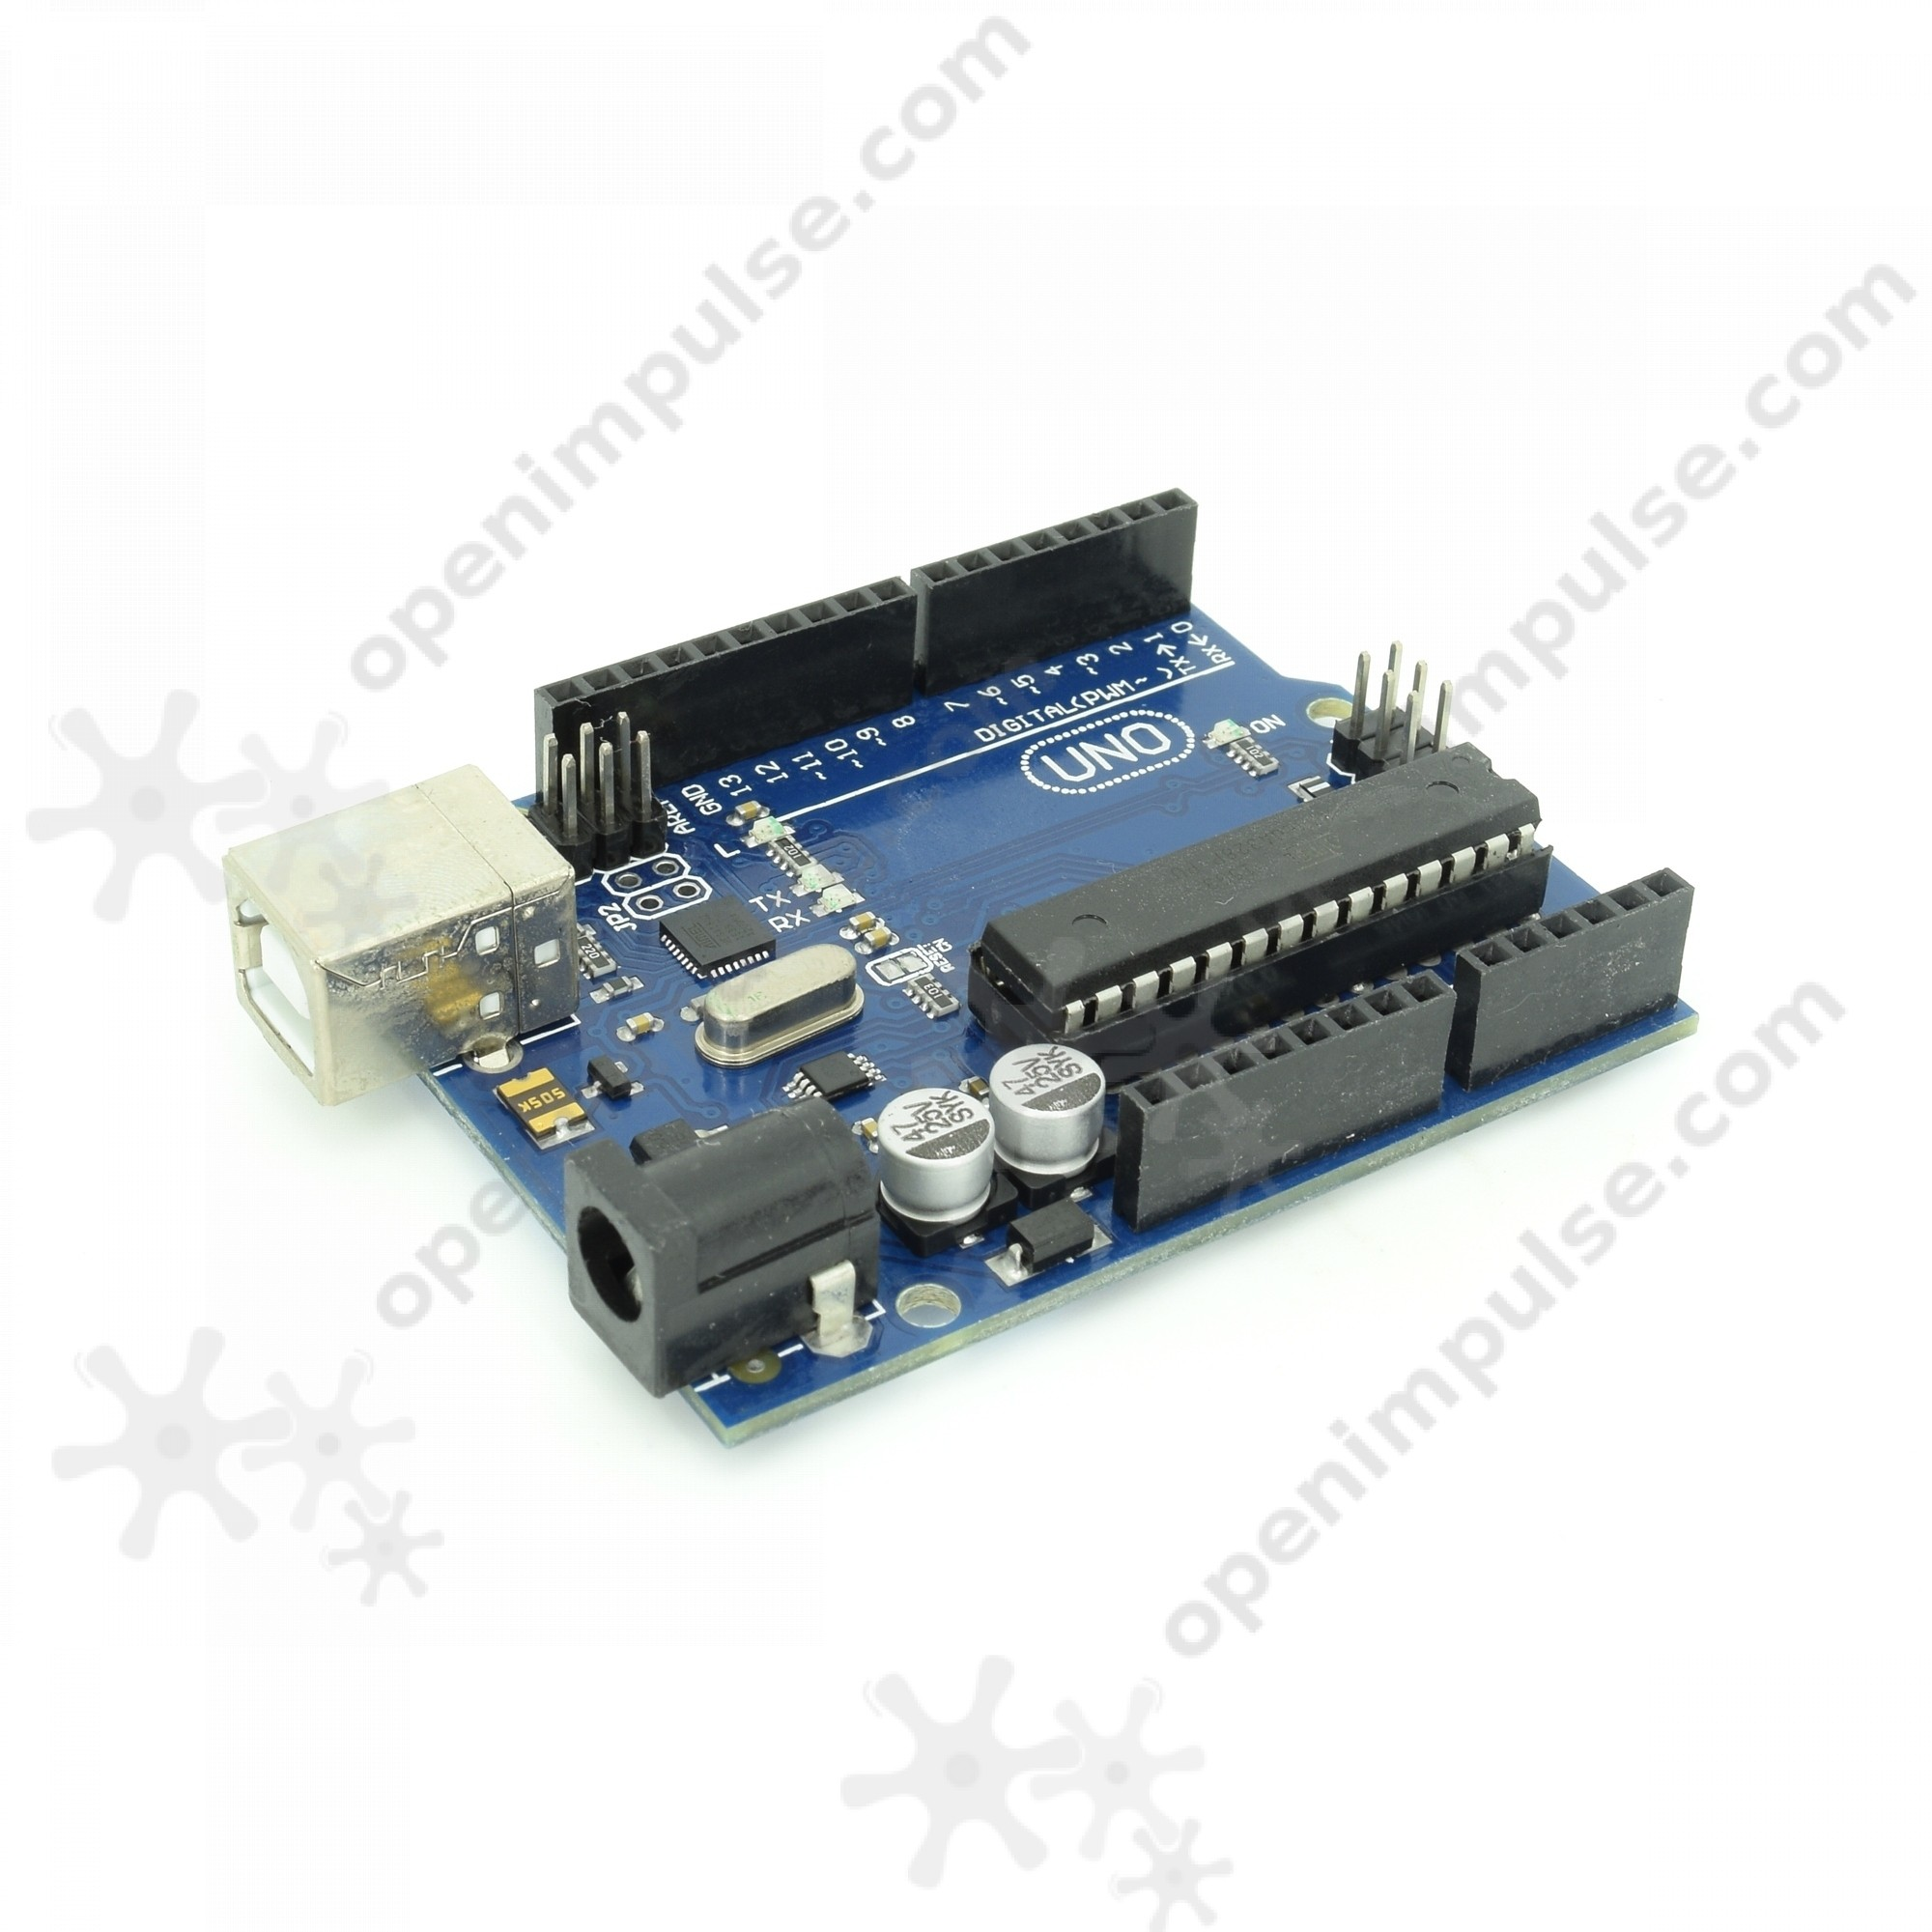 Open-Smart Empire Multifunction UnoR 3 ATMEGA 328p Development Board for Arduino ge